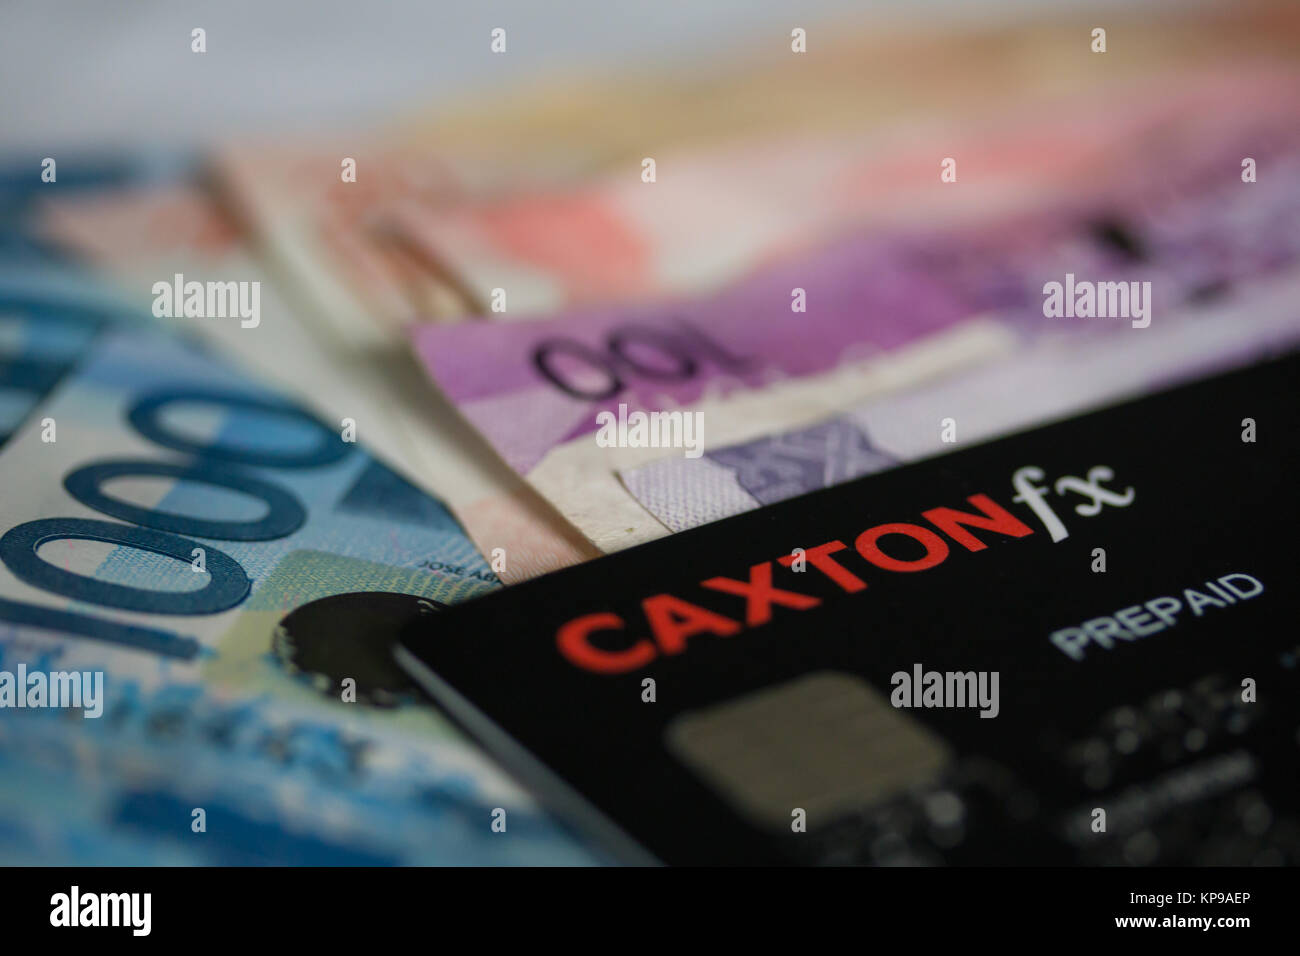 Concept image of going on holiday using a Caxton FX prepiad currency